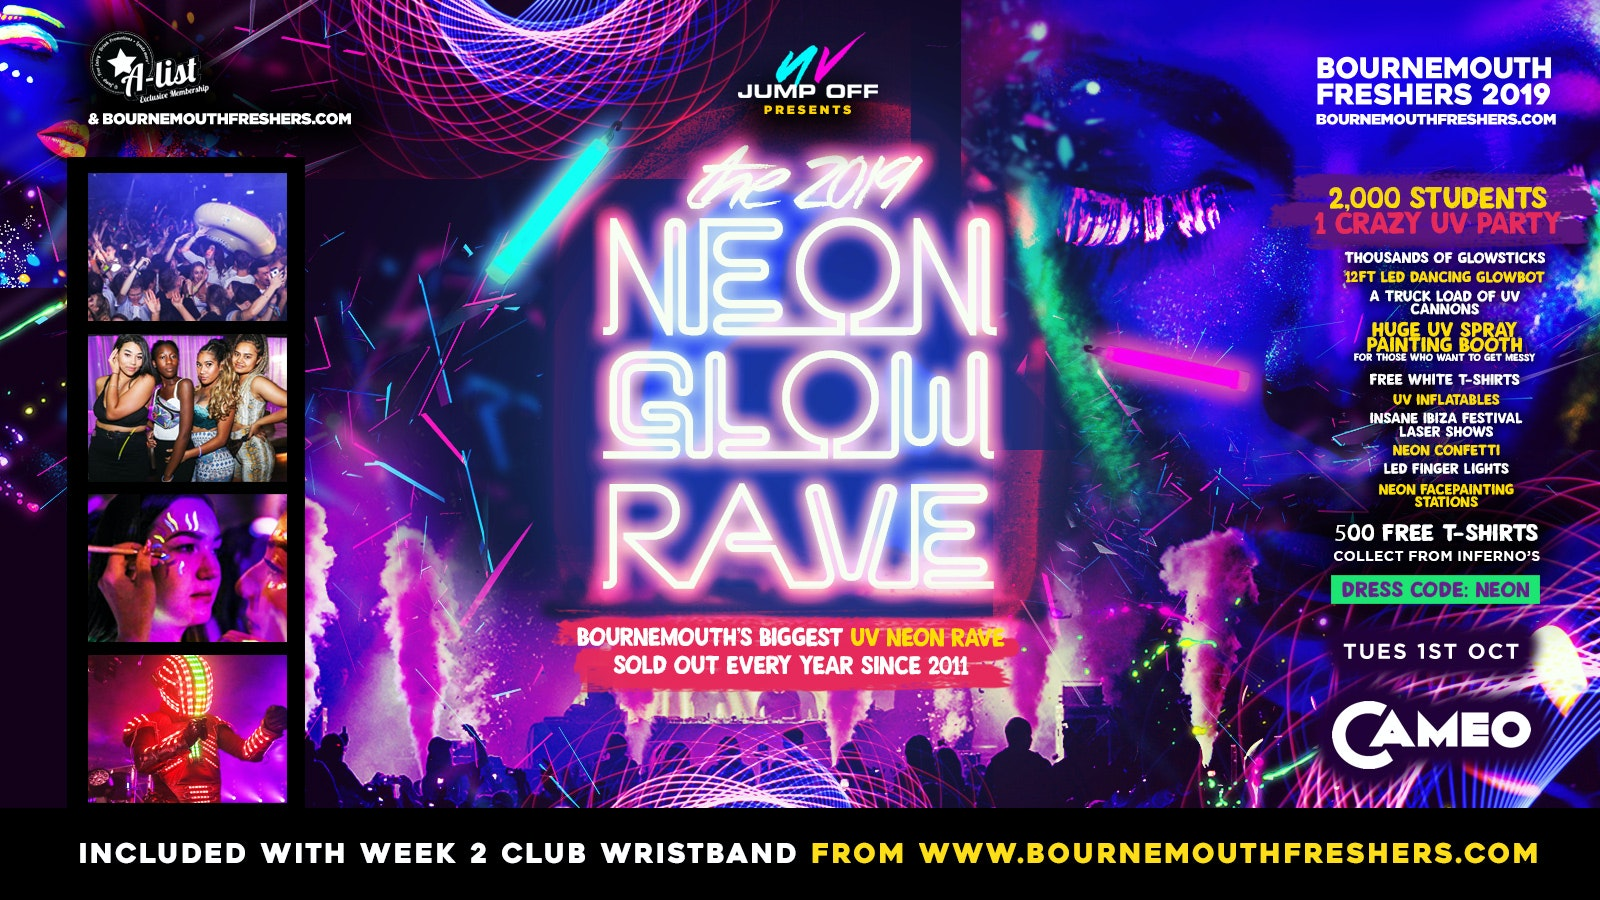 Official Neon Glow Rave // Bournemouth Freshers 2019